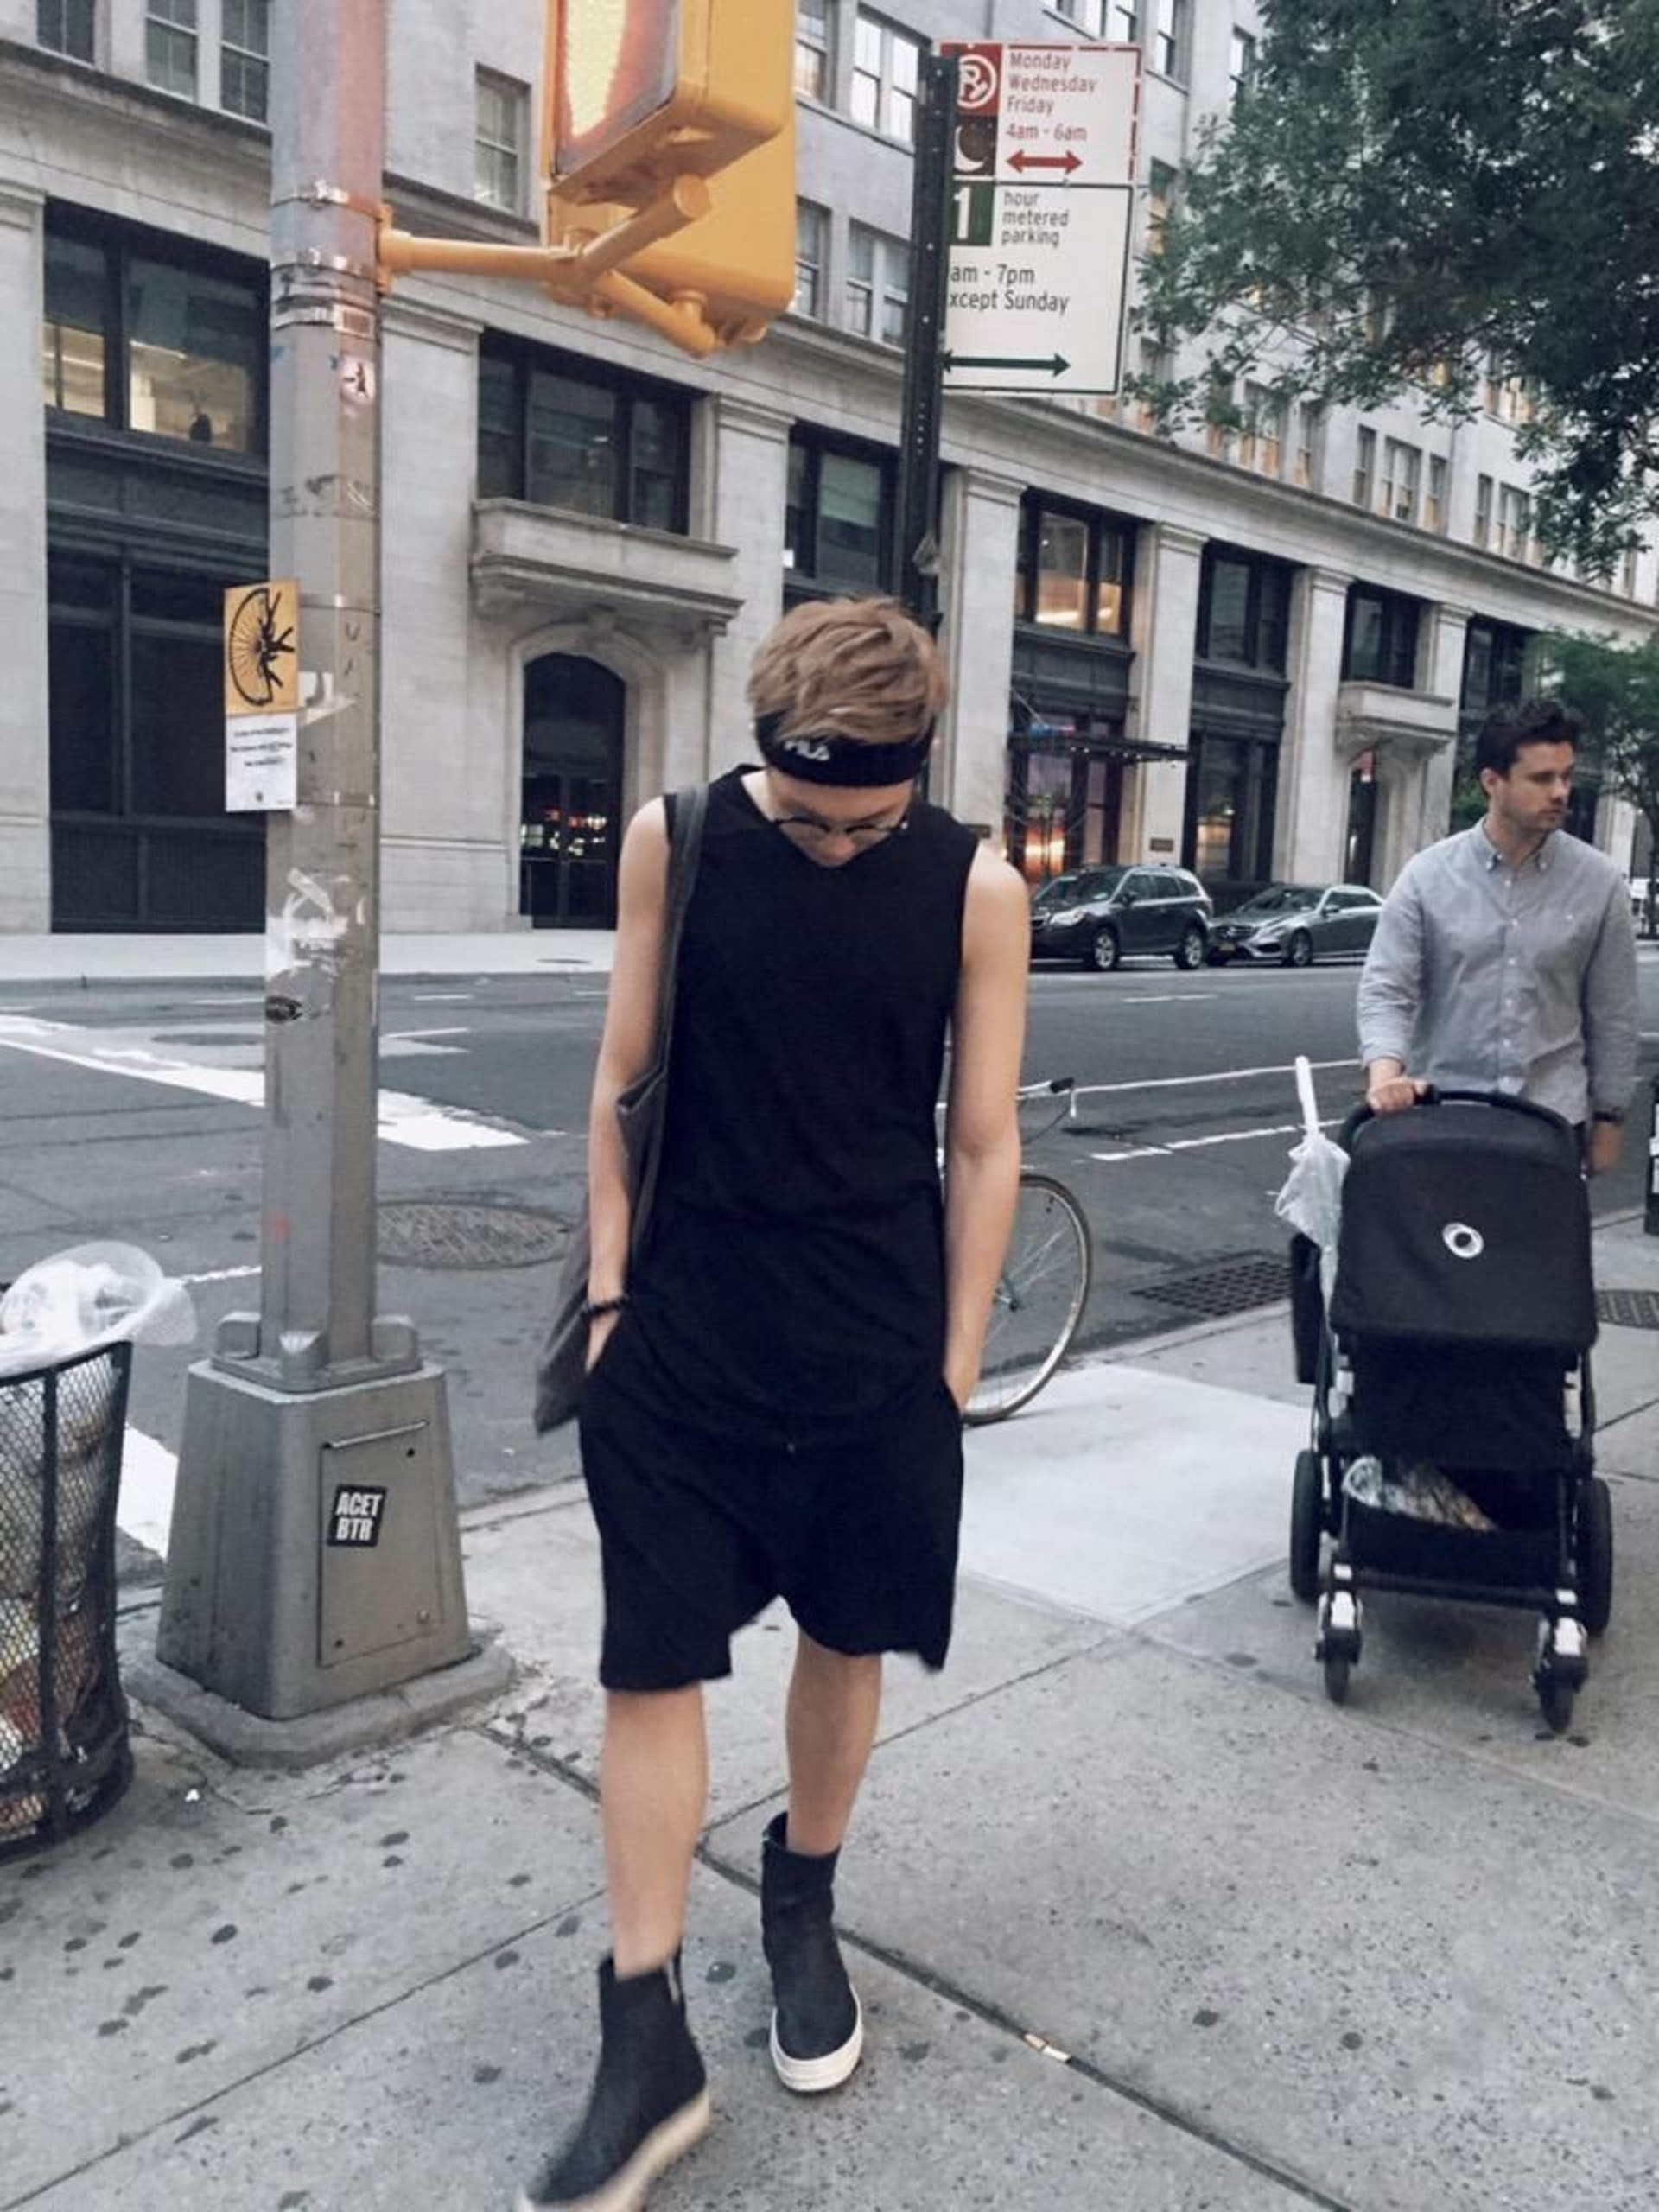 20 Sexy Photos Of Sleeveless RM — Because You Deserve It